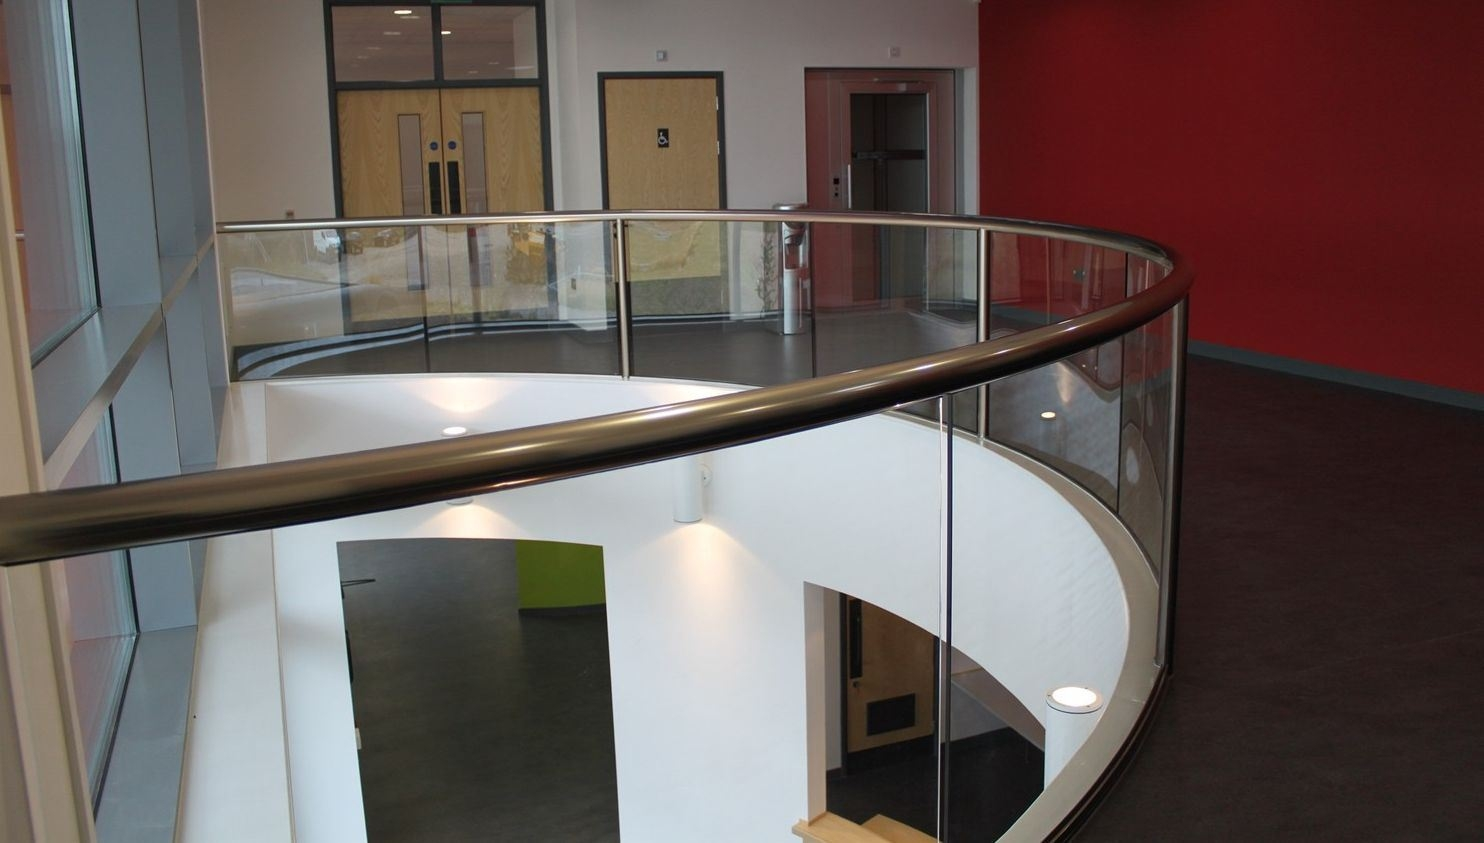 Interior Glass Banisters Glass Balustrade Railing Glass   Glass And Chrome Banisters   Designer   Wooden Glass   Frosted Glass   Oak   Contemporary